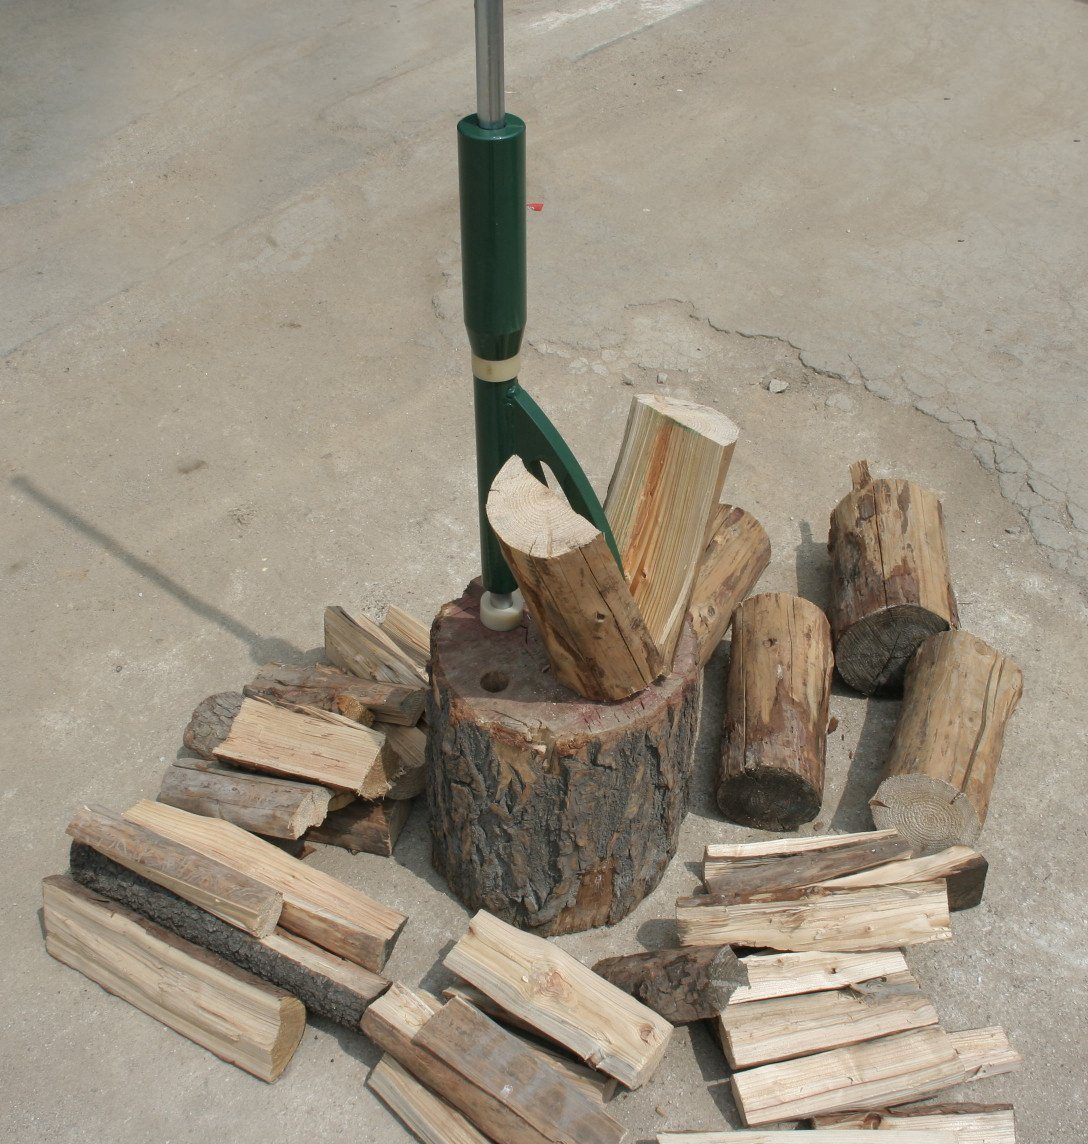 INTERHOME DIVISORA Madera – Log Splitter